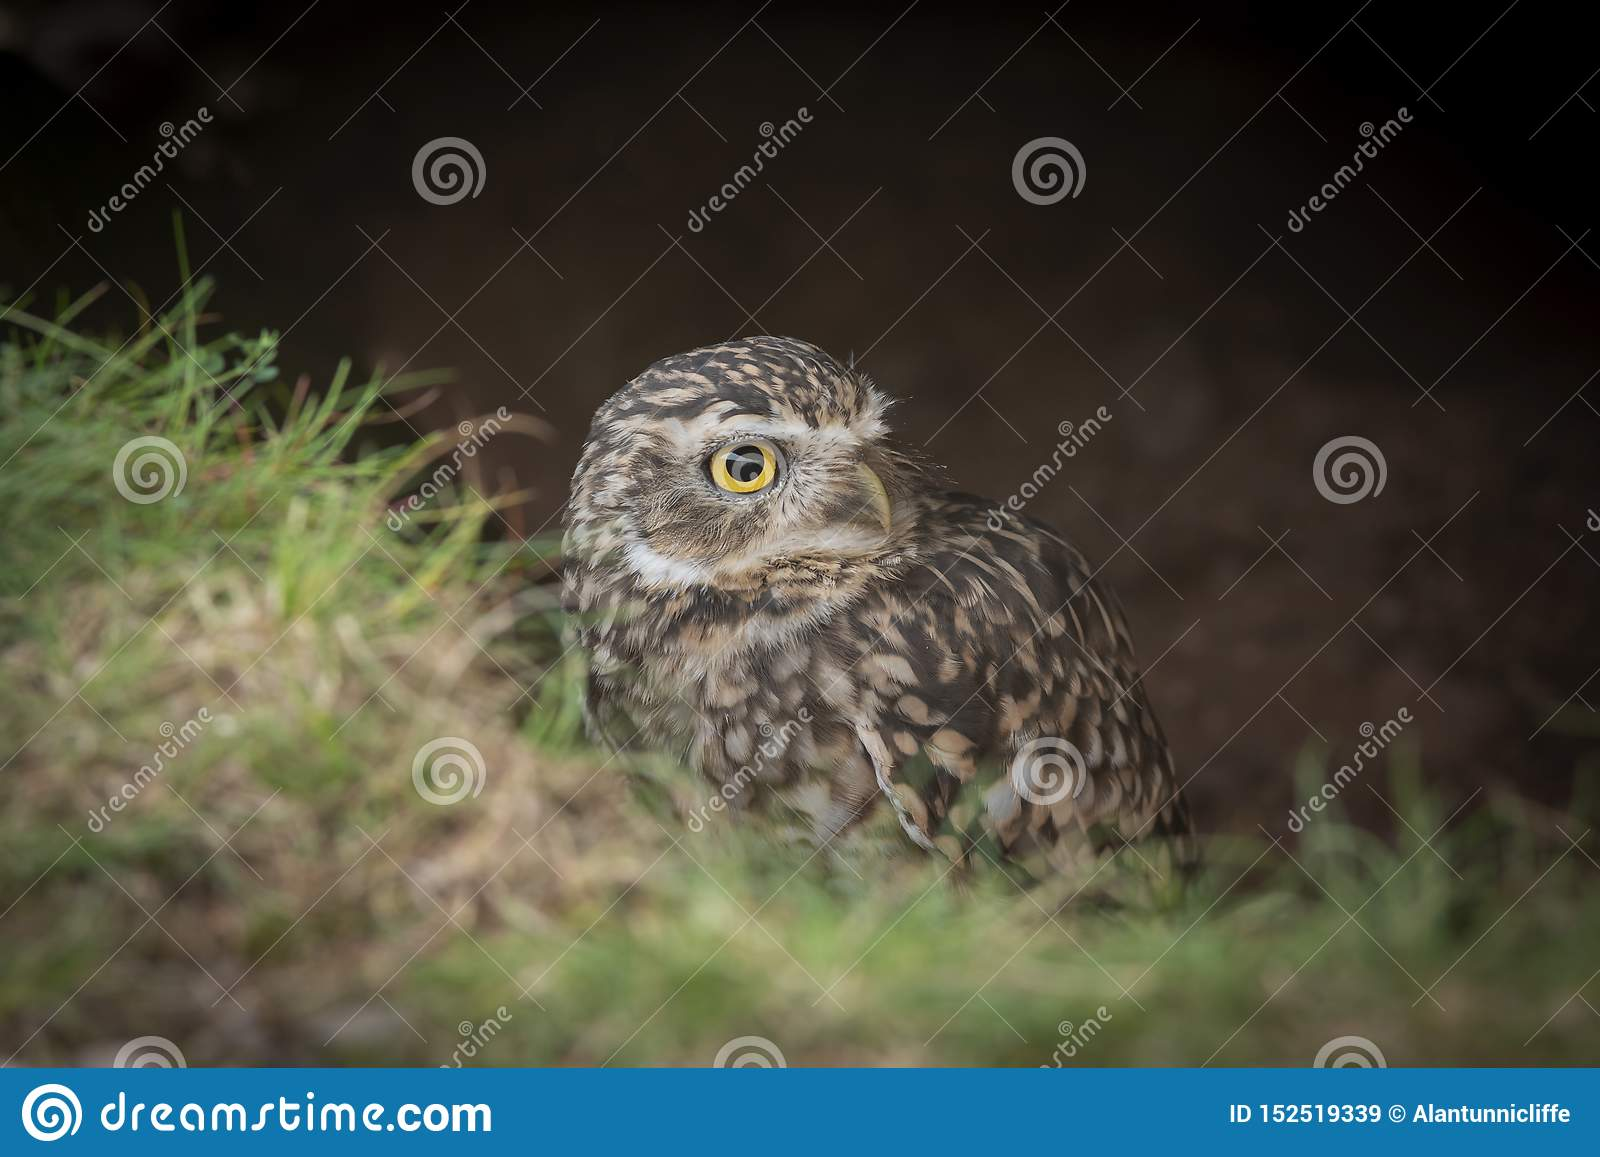 Burrowing owl emerging from ground